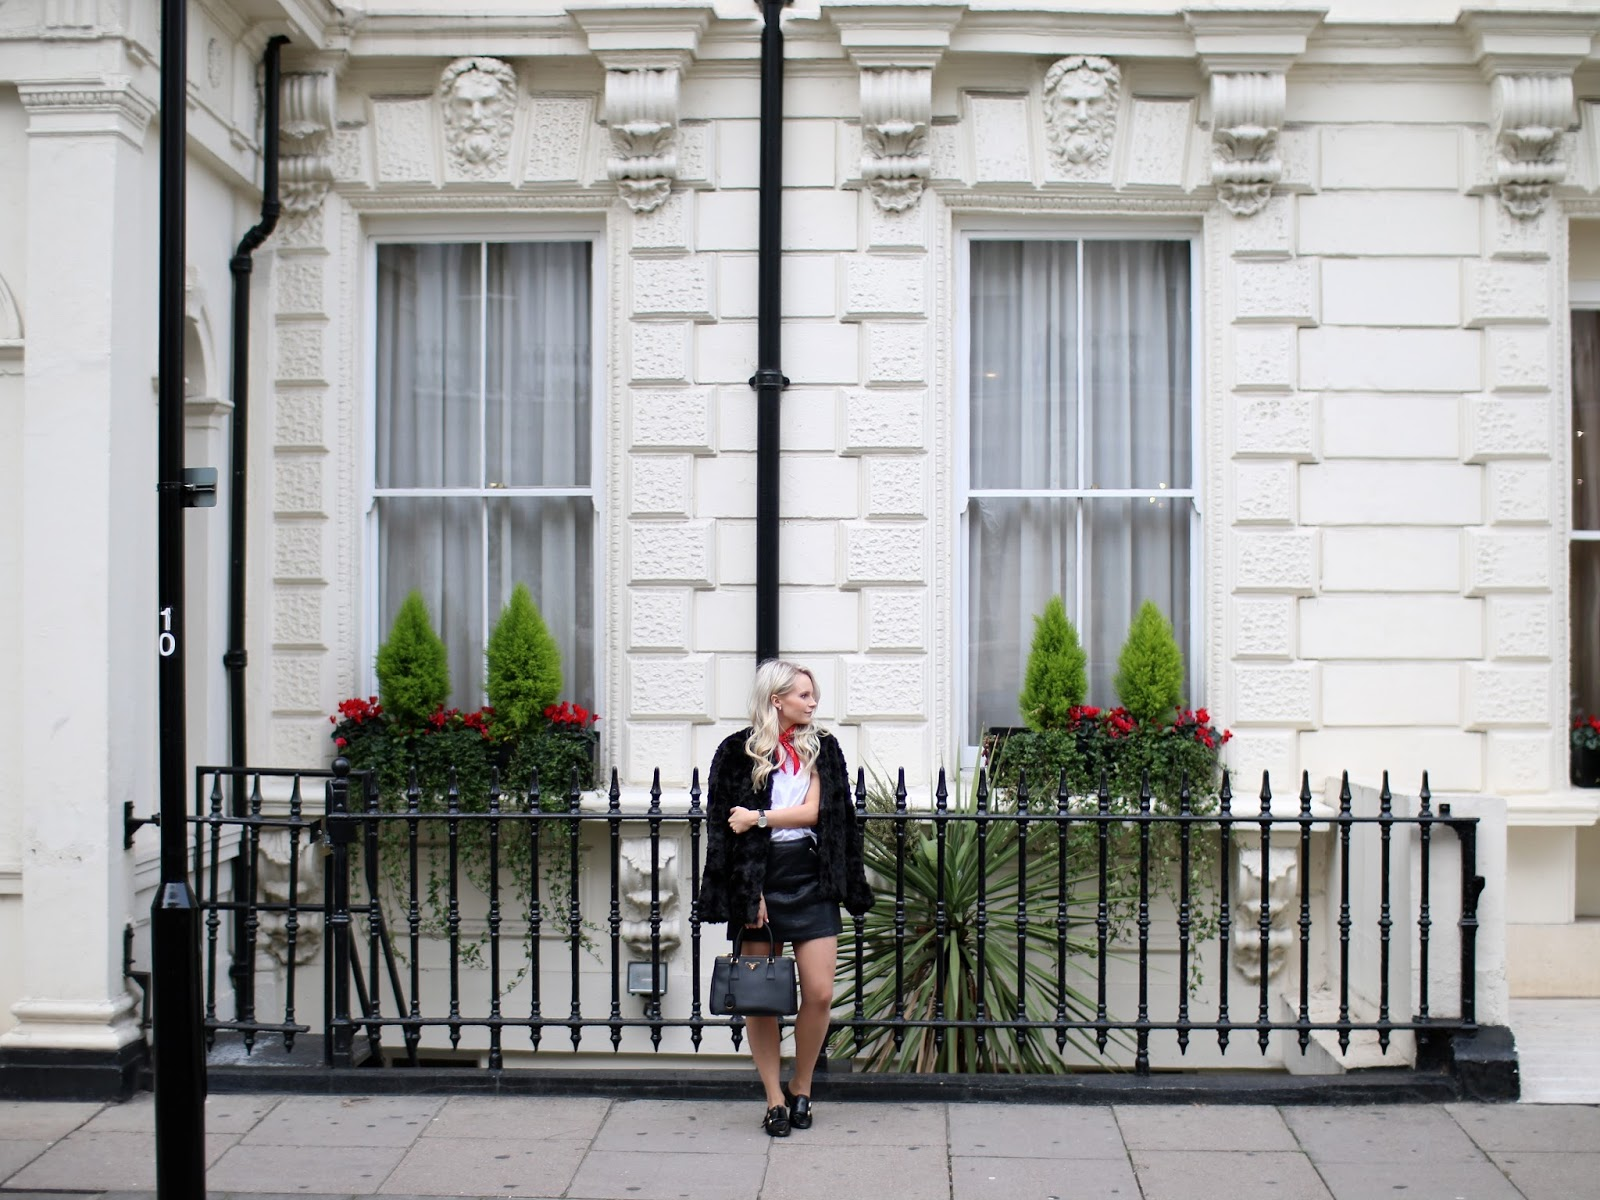 a women in front of beautiful building in London, green and red flowers behind her, she is wearing a dark coloured fur coat